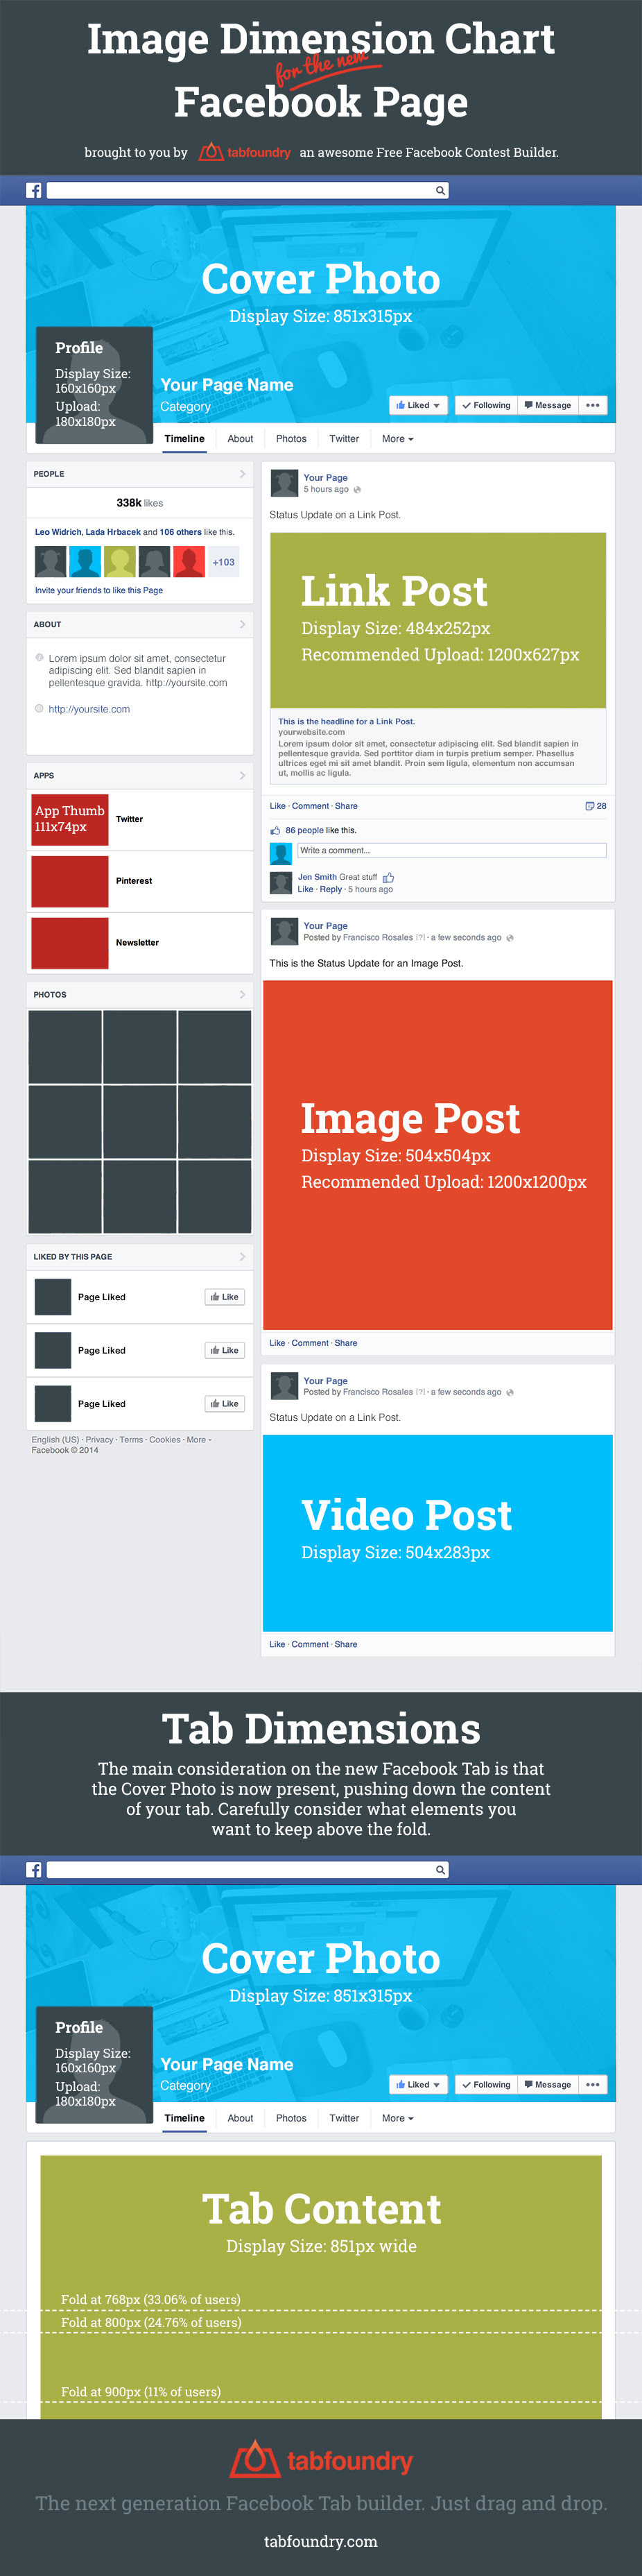 Infographic: Image Dimension Chart for the new Facebook Page #infographic